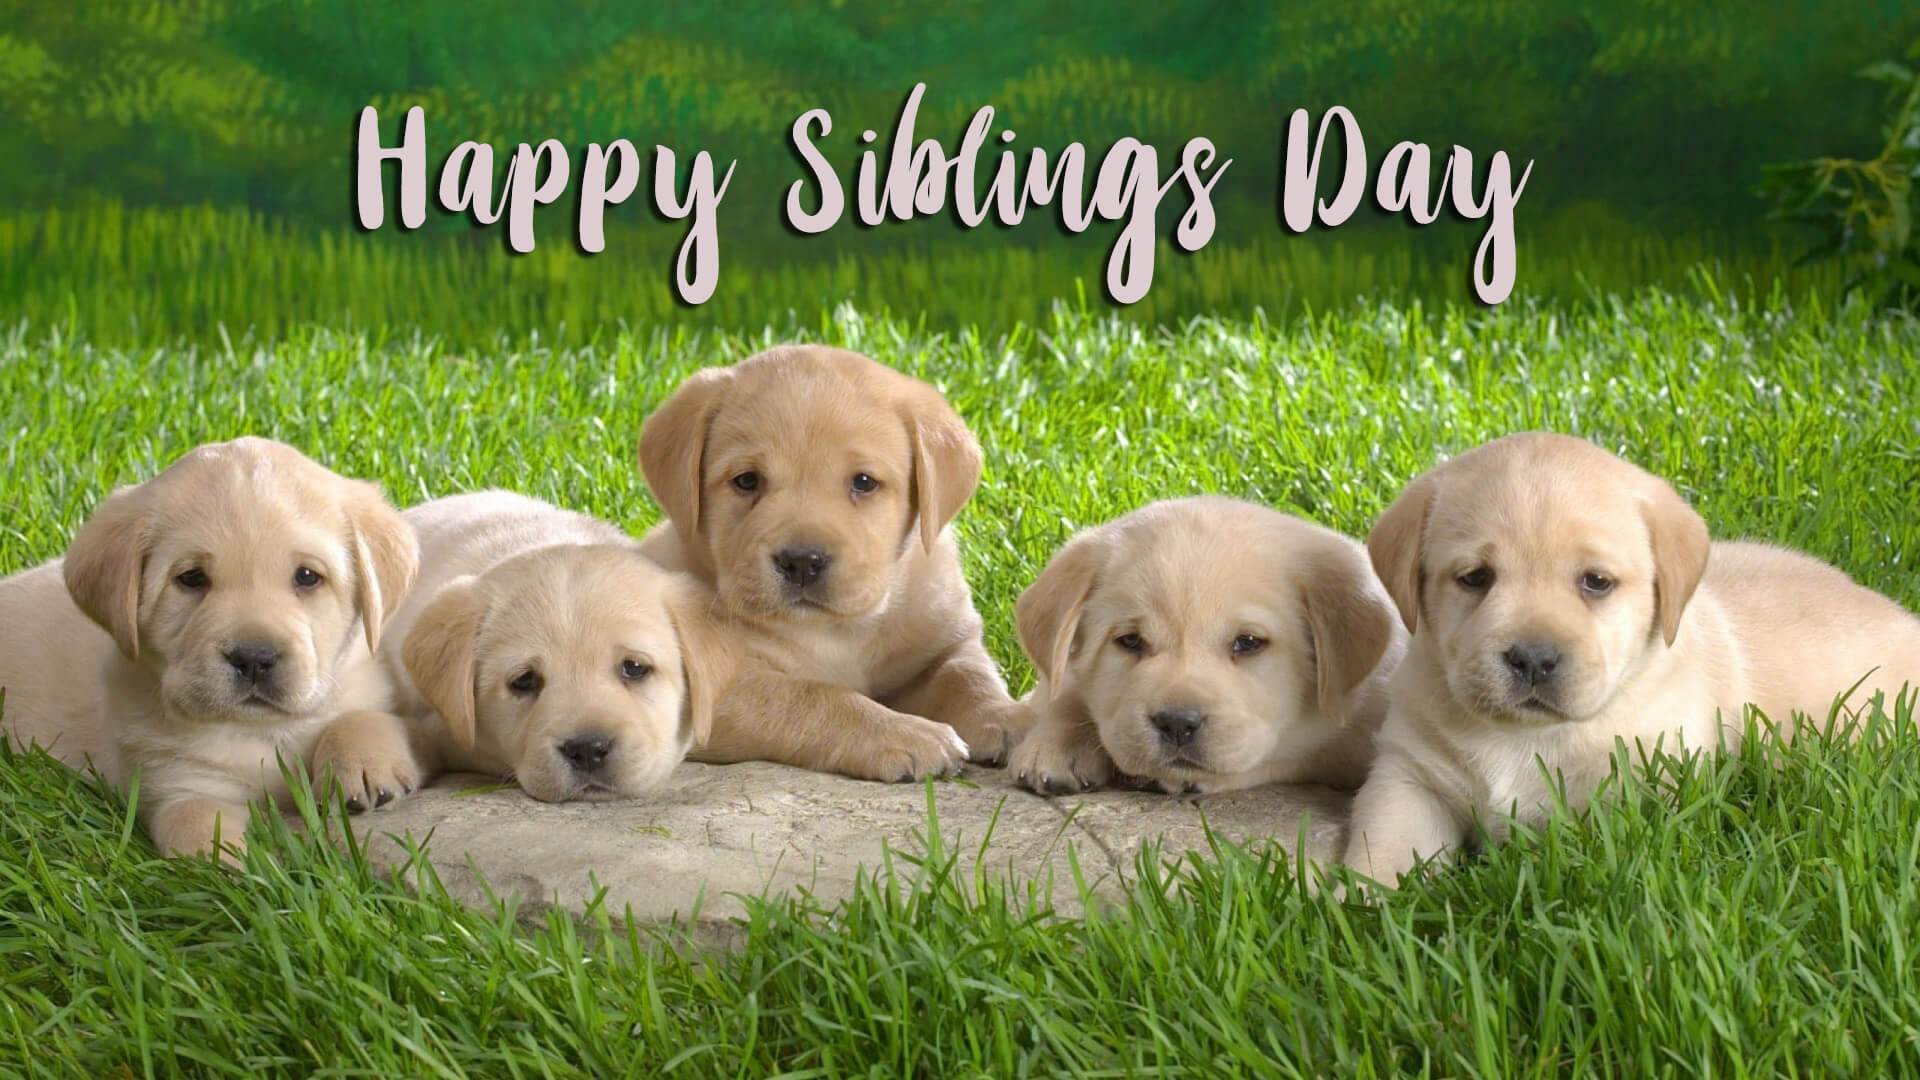 Happy National Siblings Day Five Puppy Labrador Dog Hd Wallpaper 1920x1080